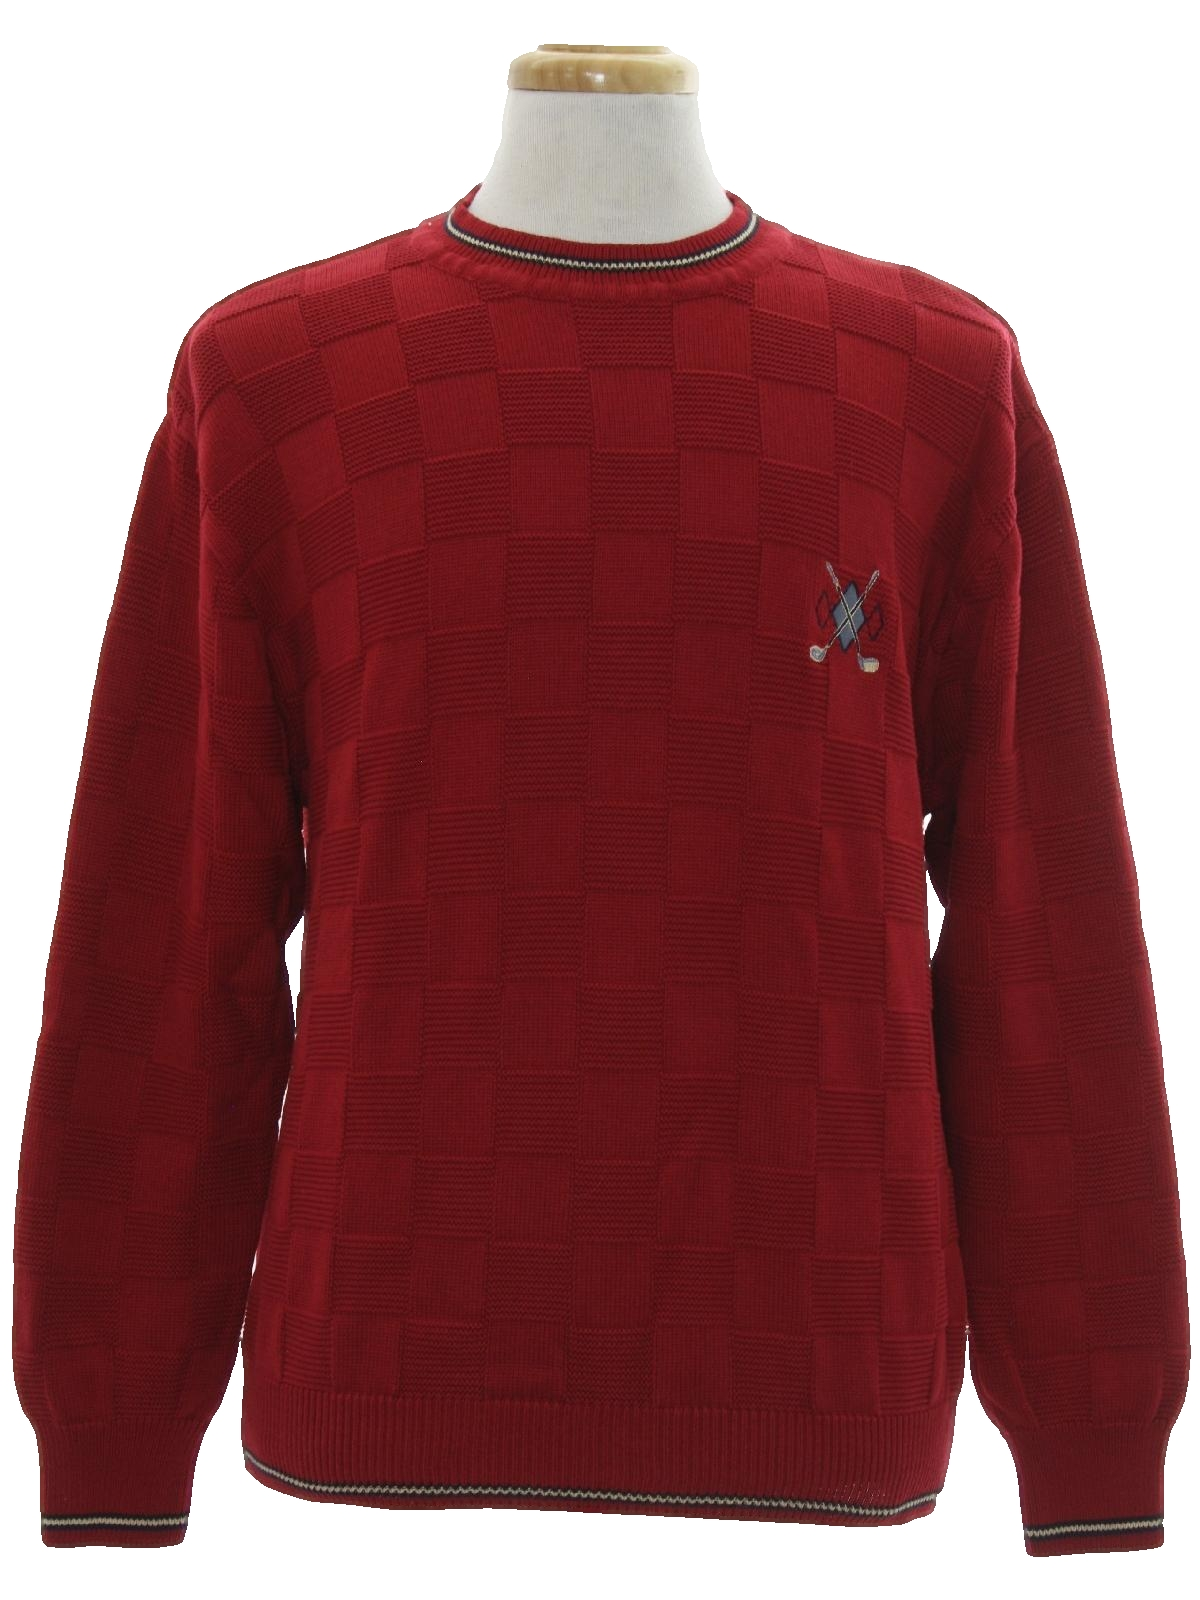 Nineties Vintage Sweater 90s Fairway Outfitters Mens Berry Red